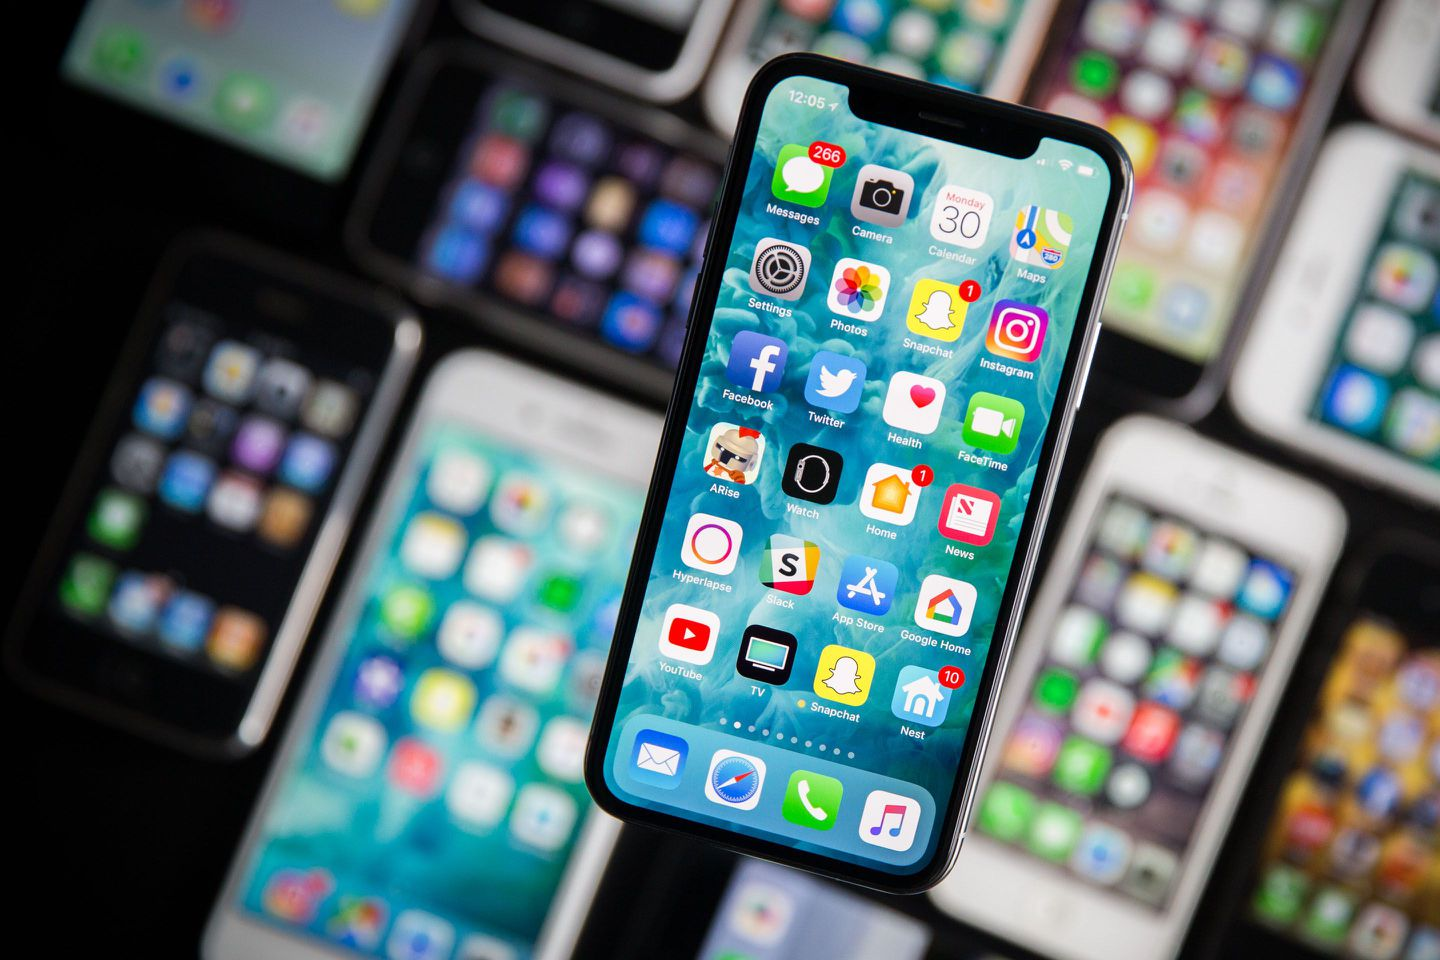 Iphone x review roundup the best iphone ever made iphone in the first reviews of the iphone x apples priciest smartphone yet are in and the consensus is that its the best iphone apple has ever made malvernweather Choice Image